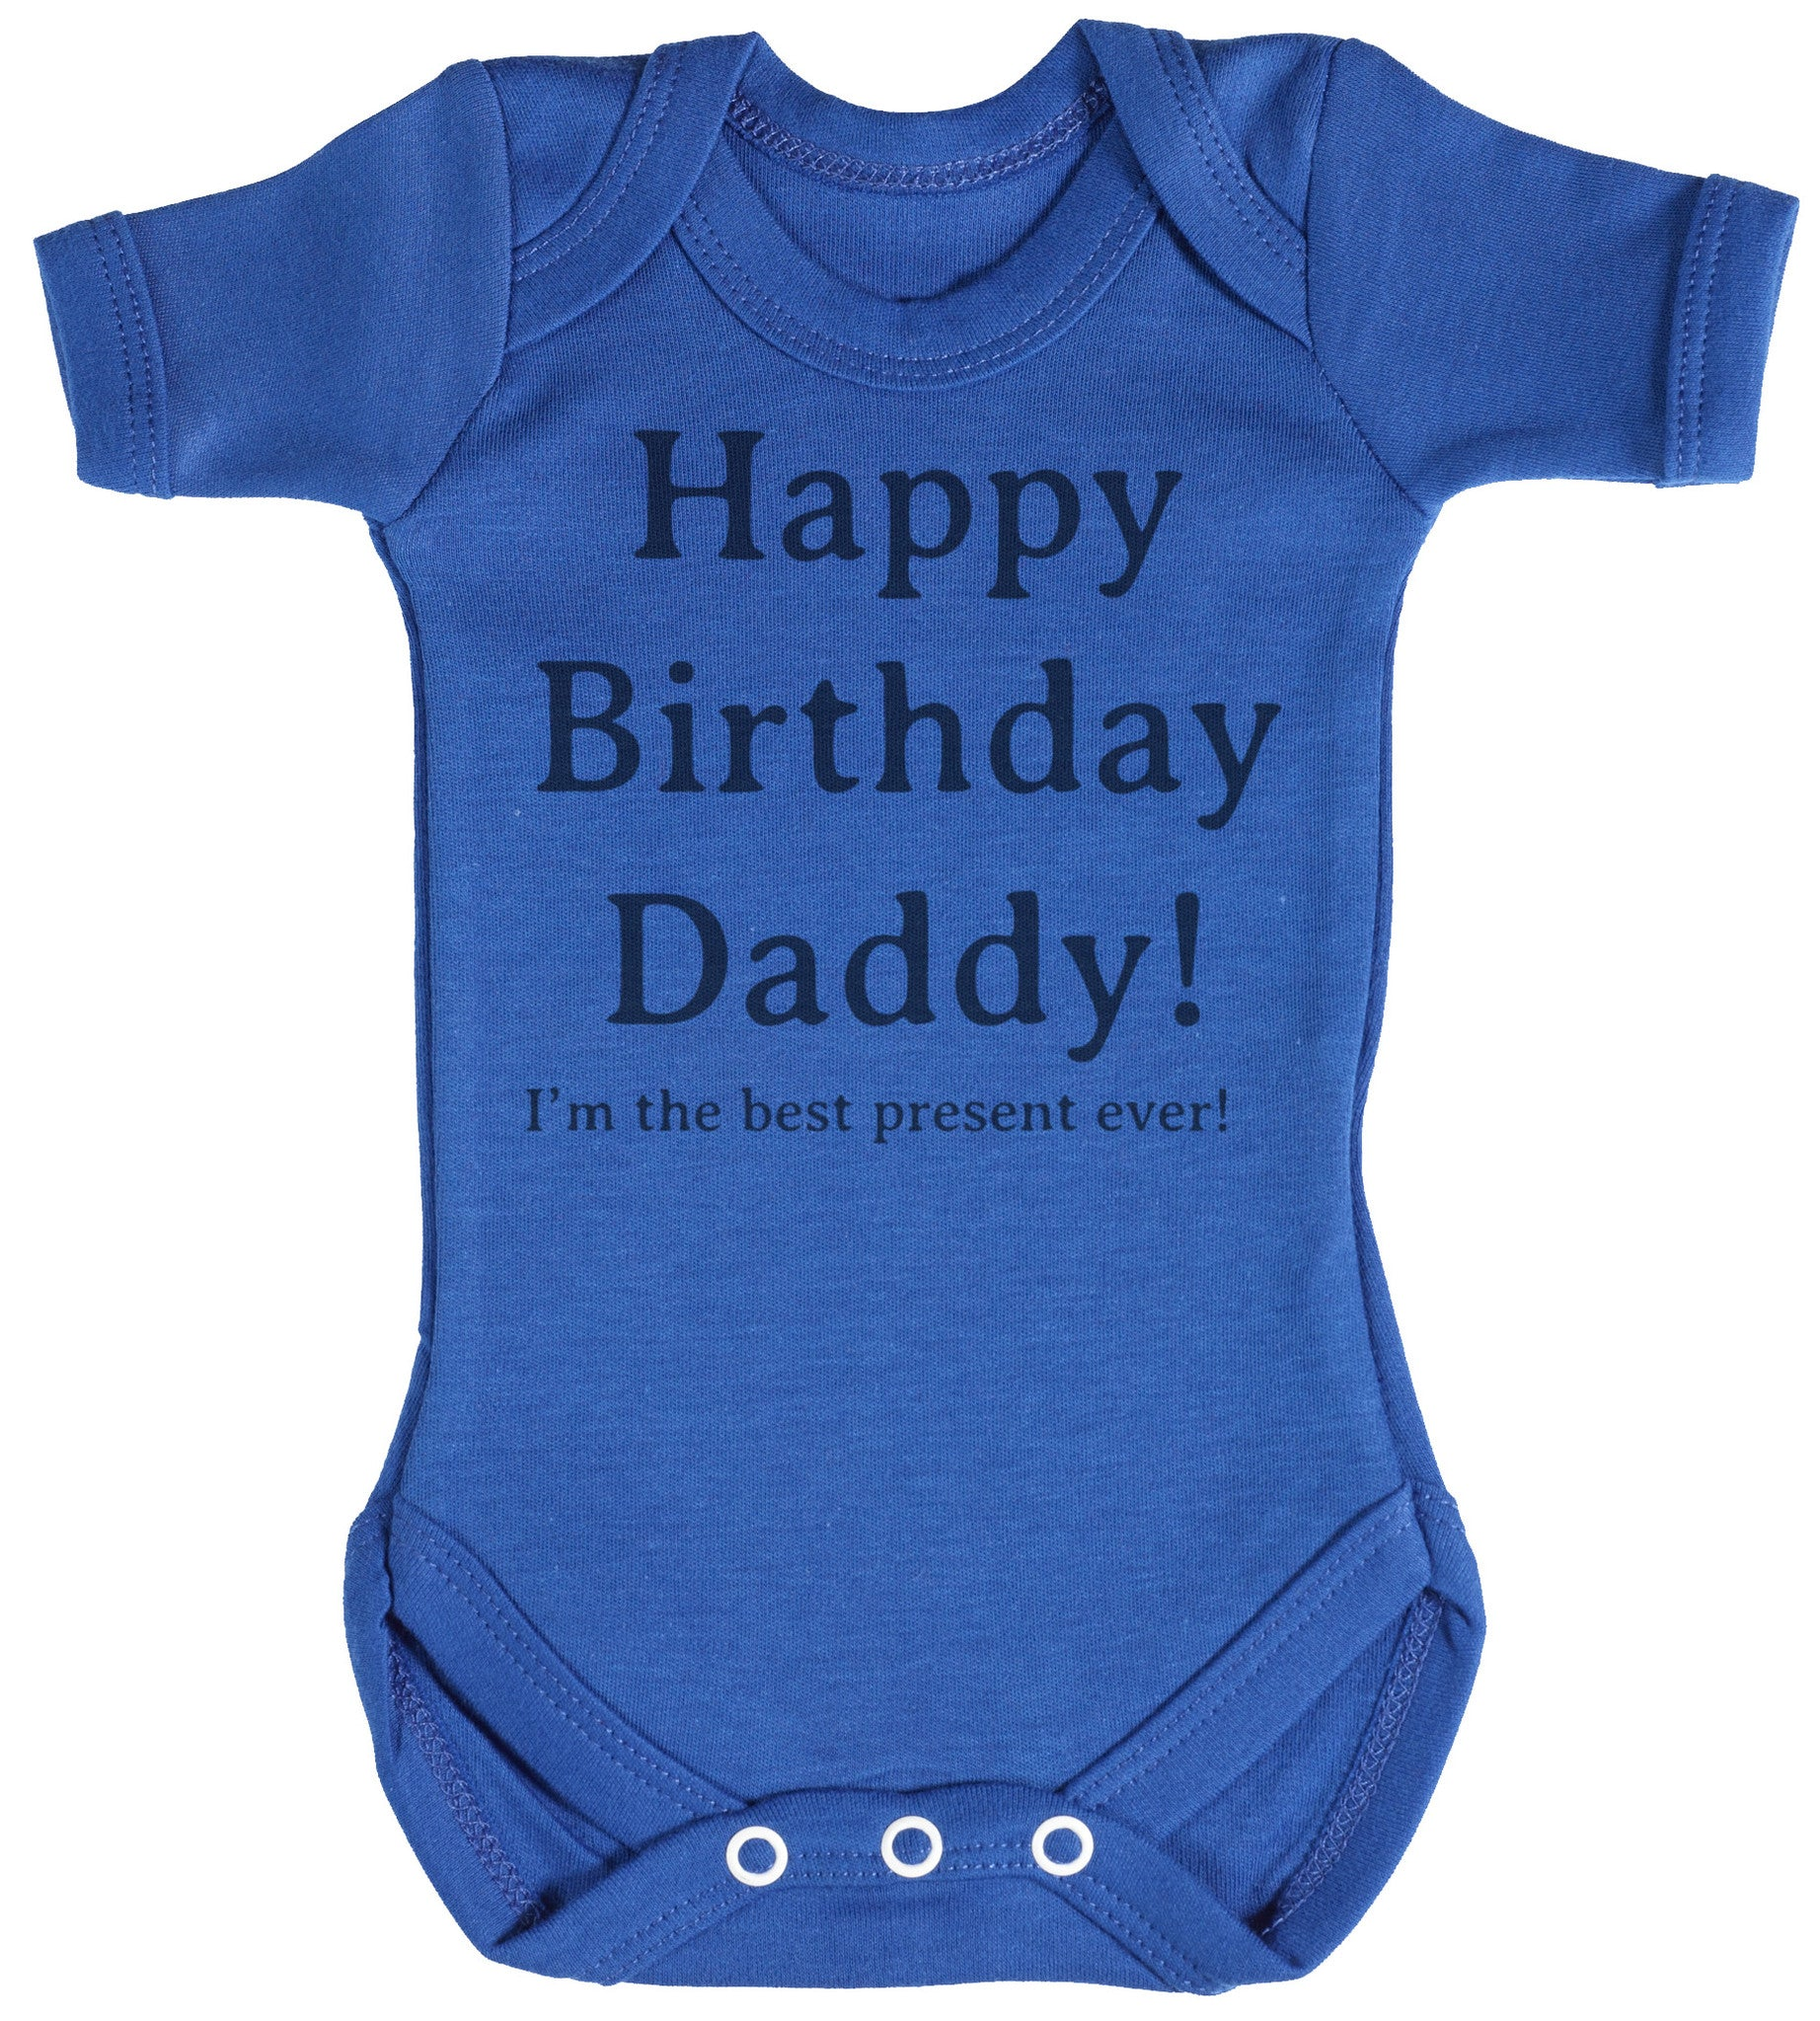 Happy Birthday Daddy! Baby Bodysuit / Babygrow